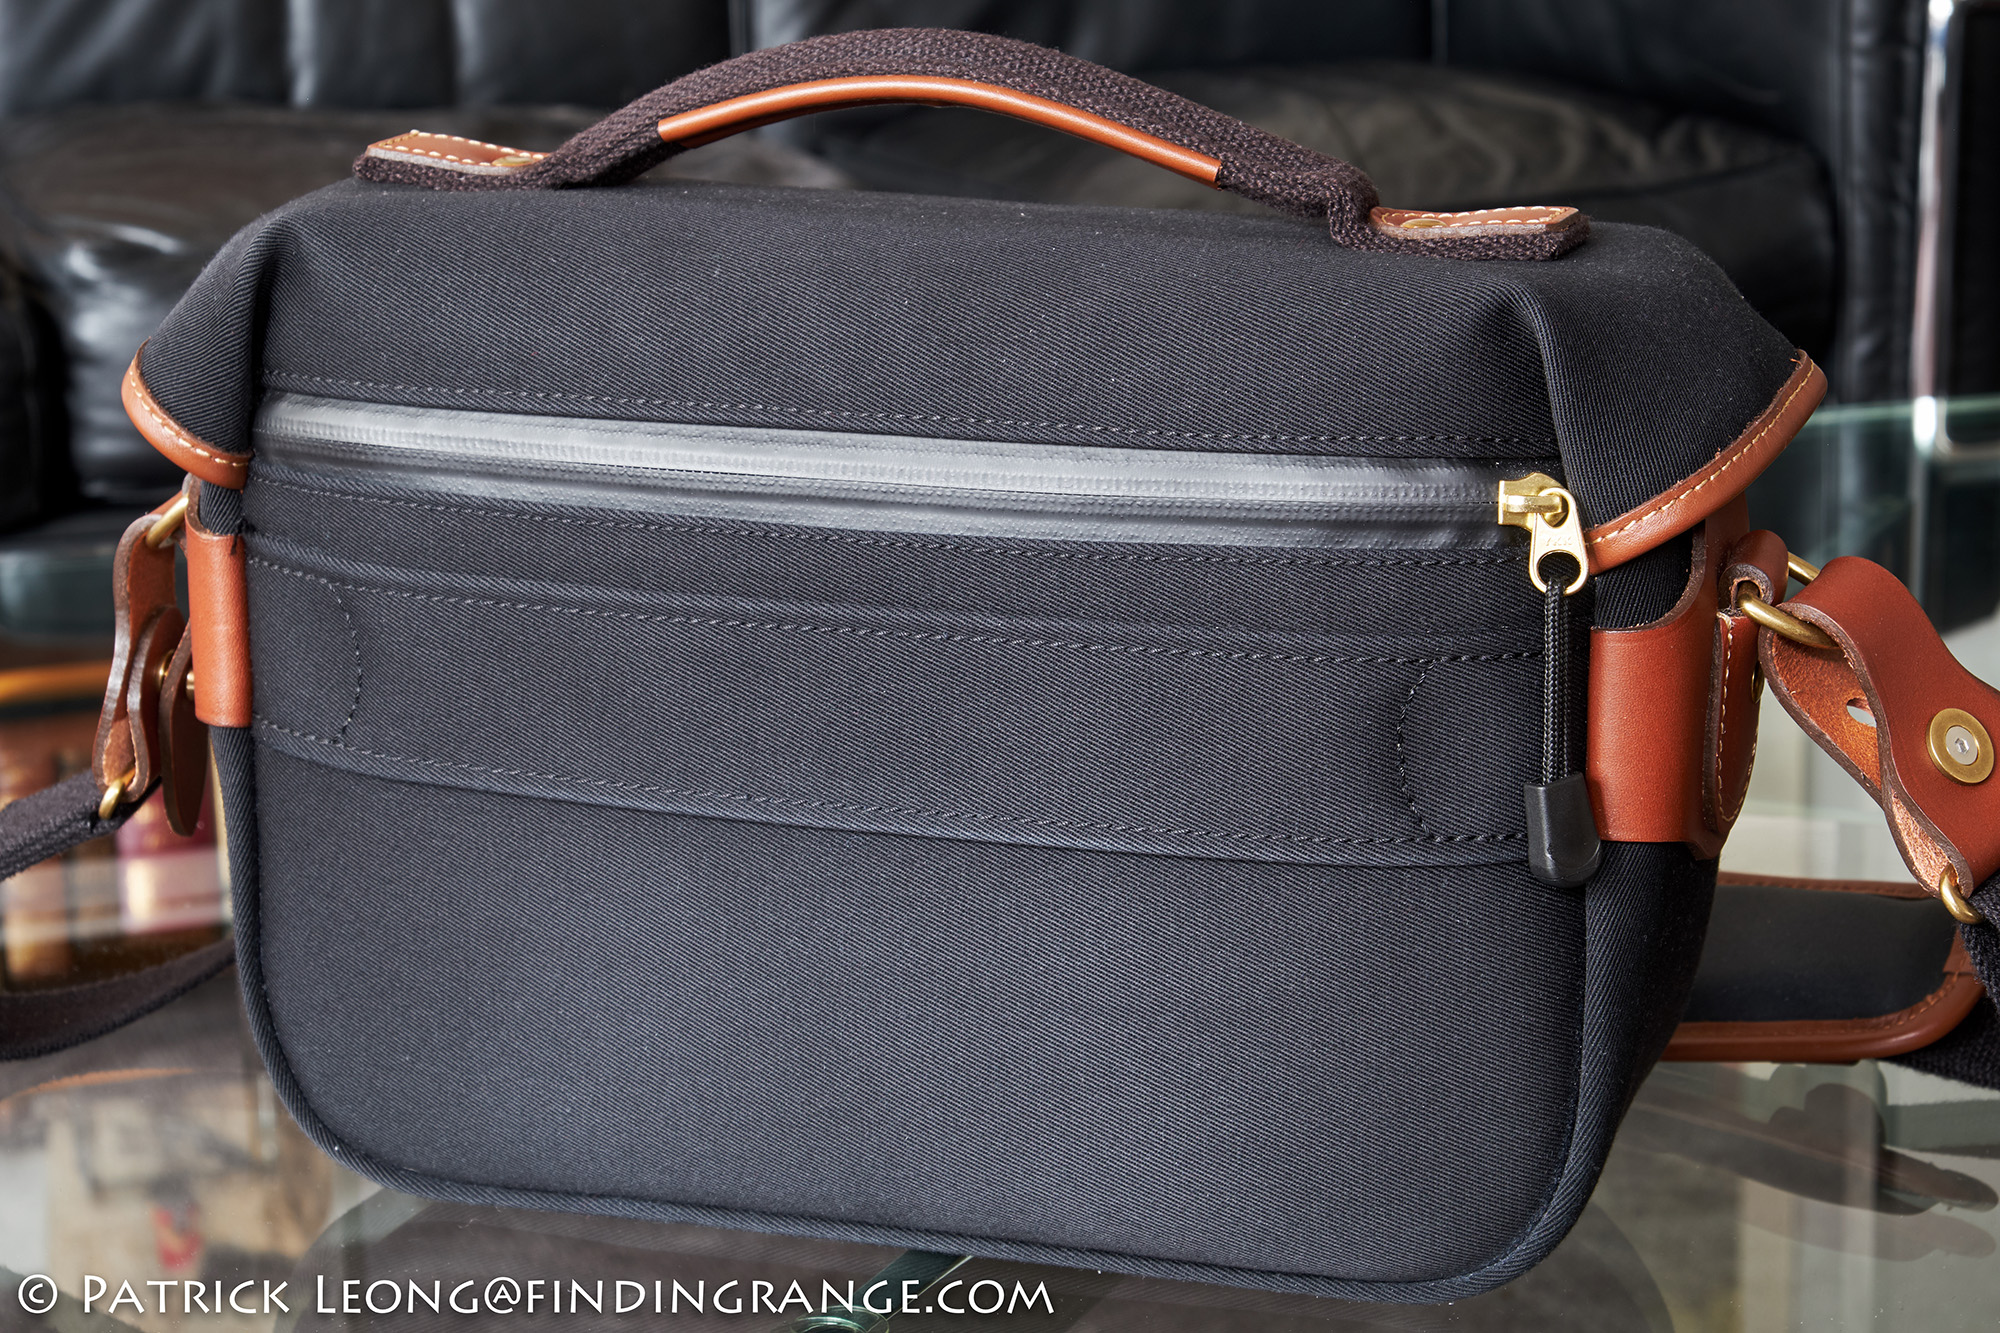 Billingham Hadley Small Pro Camera Bag Review Shoulder Sage Choc Leather Trim The Luggage Trolley Strap Allows You To Slide Over Handle On A Suitcase For Added Convenience